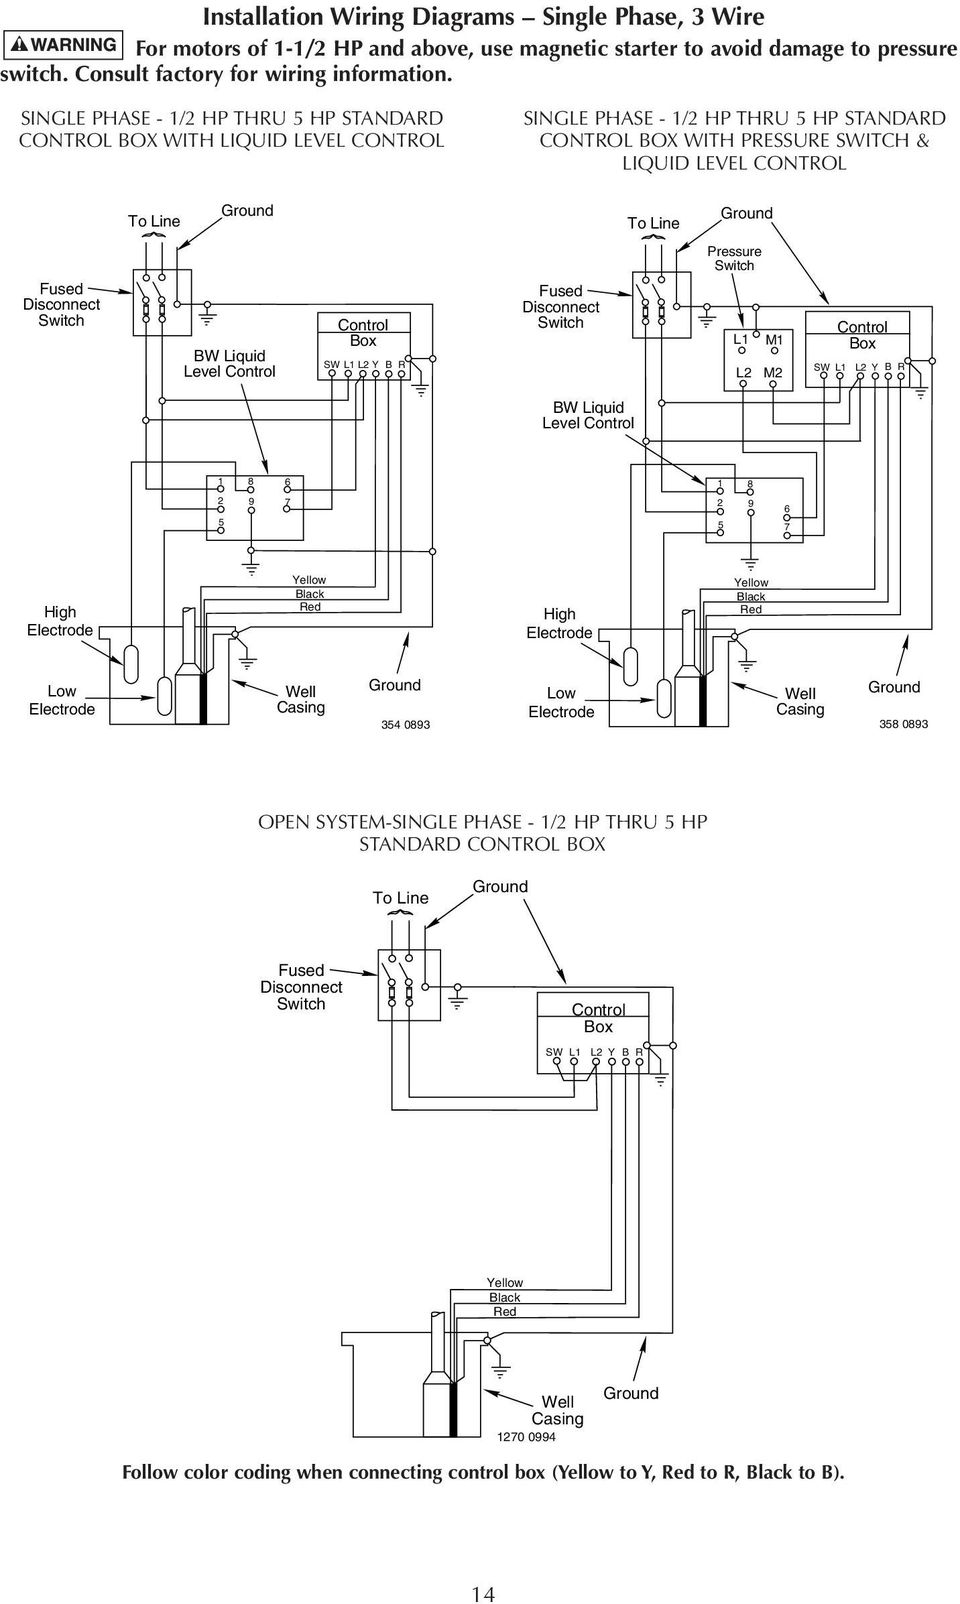 owners manual installation and operating instructions  u s